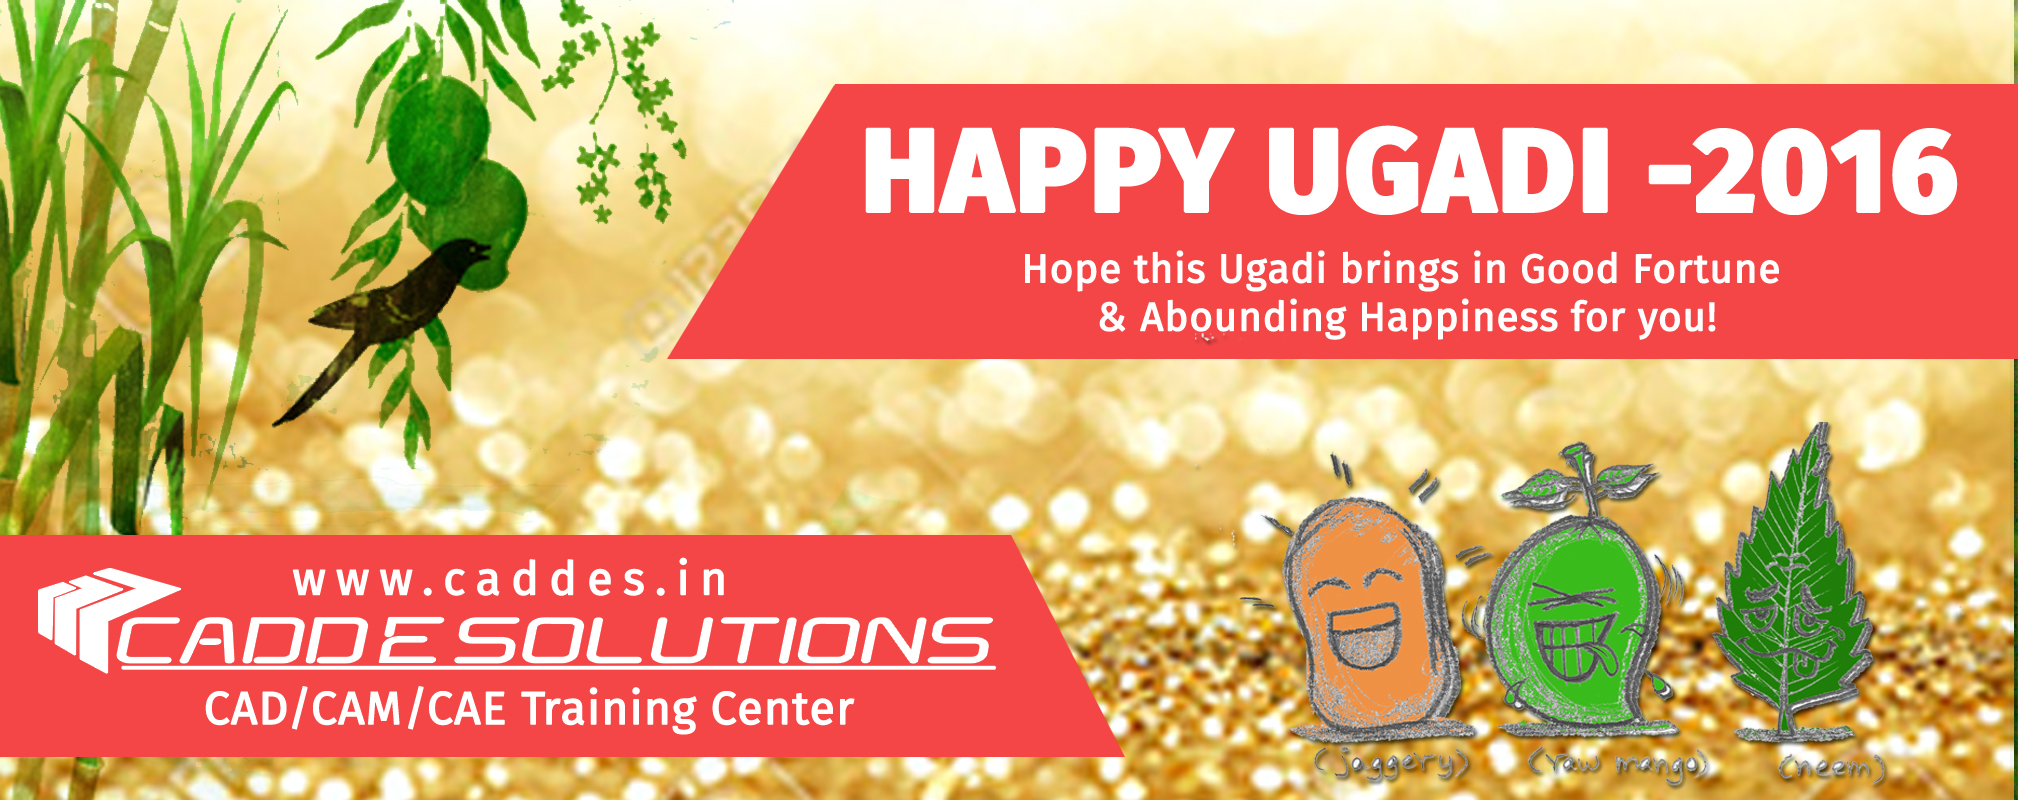 ugadi offer flat 15 off on all courses